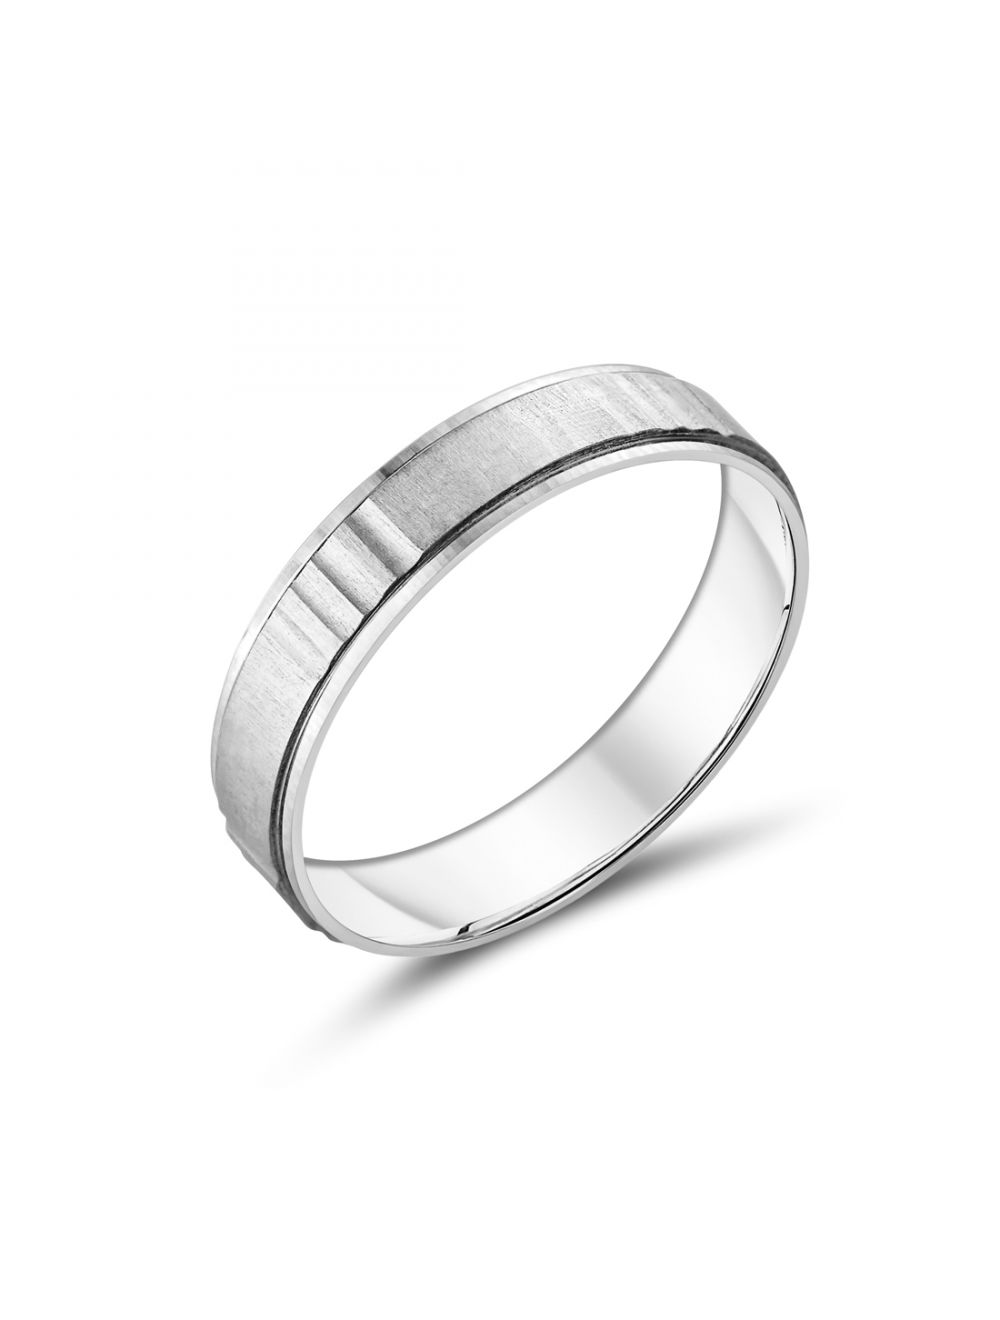 59fd256d5da9b 9ct White Gold Gents Wedding Bands with Groove Design